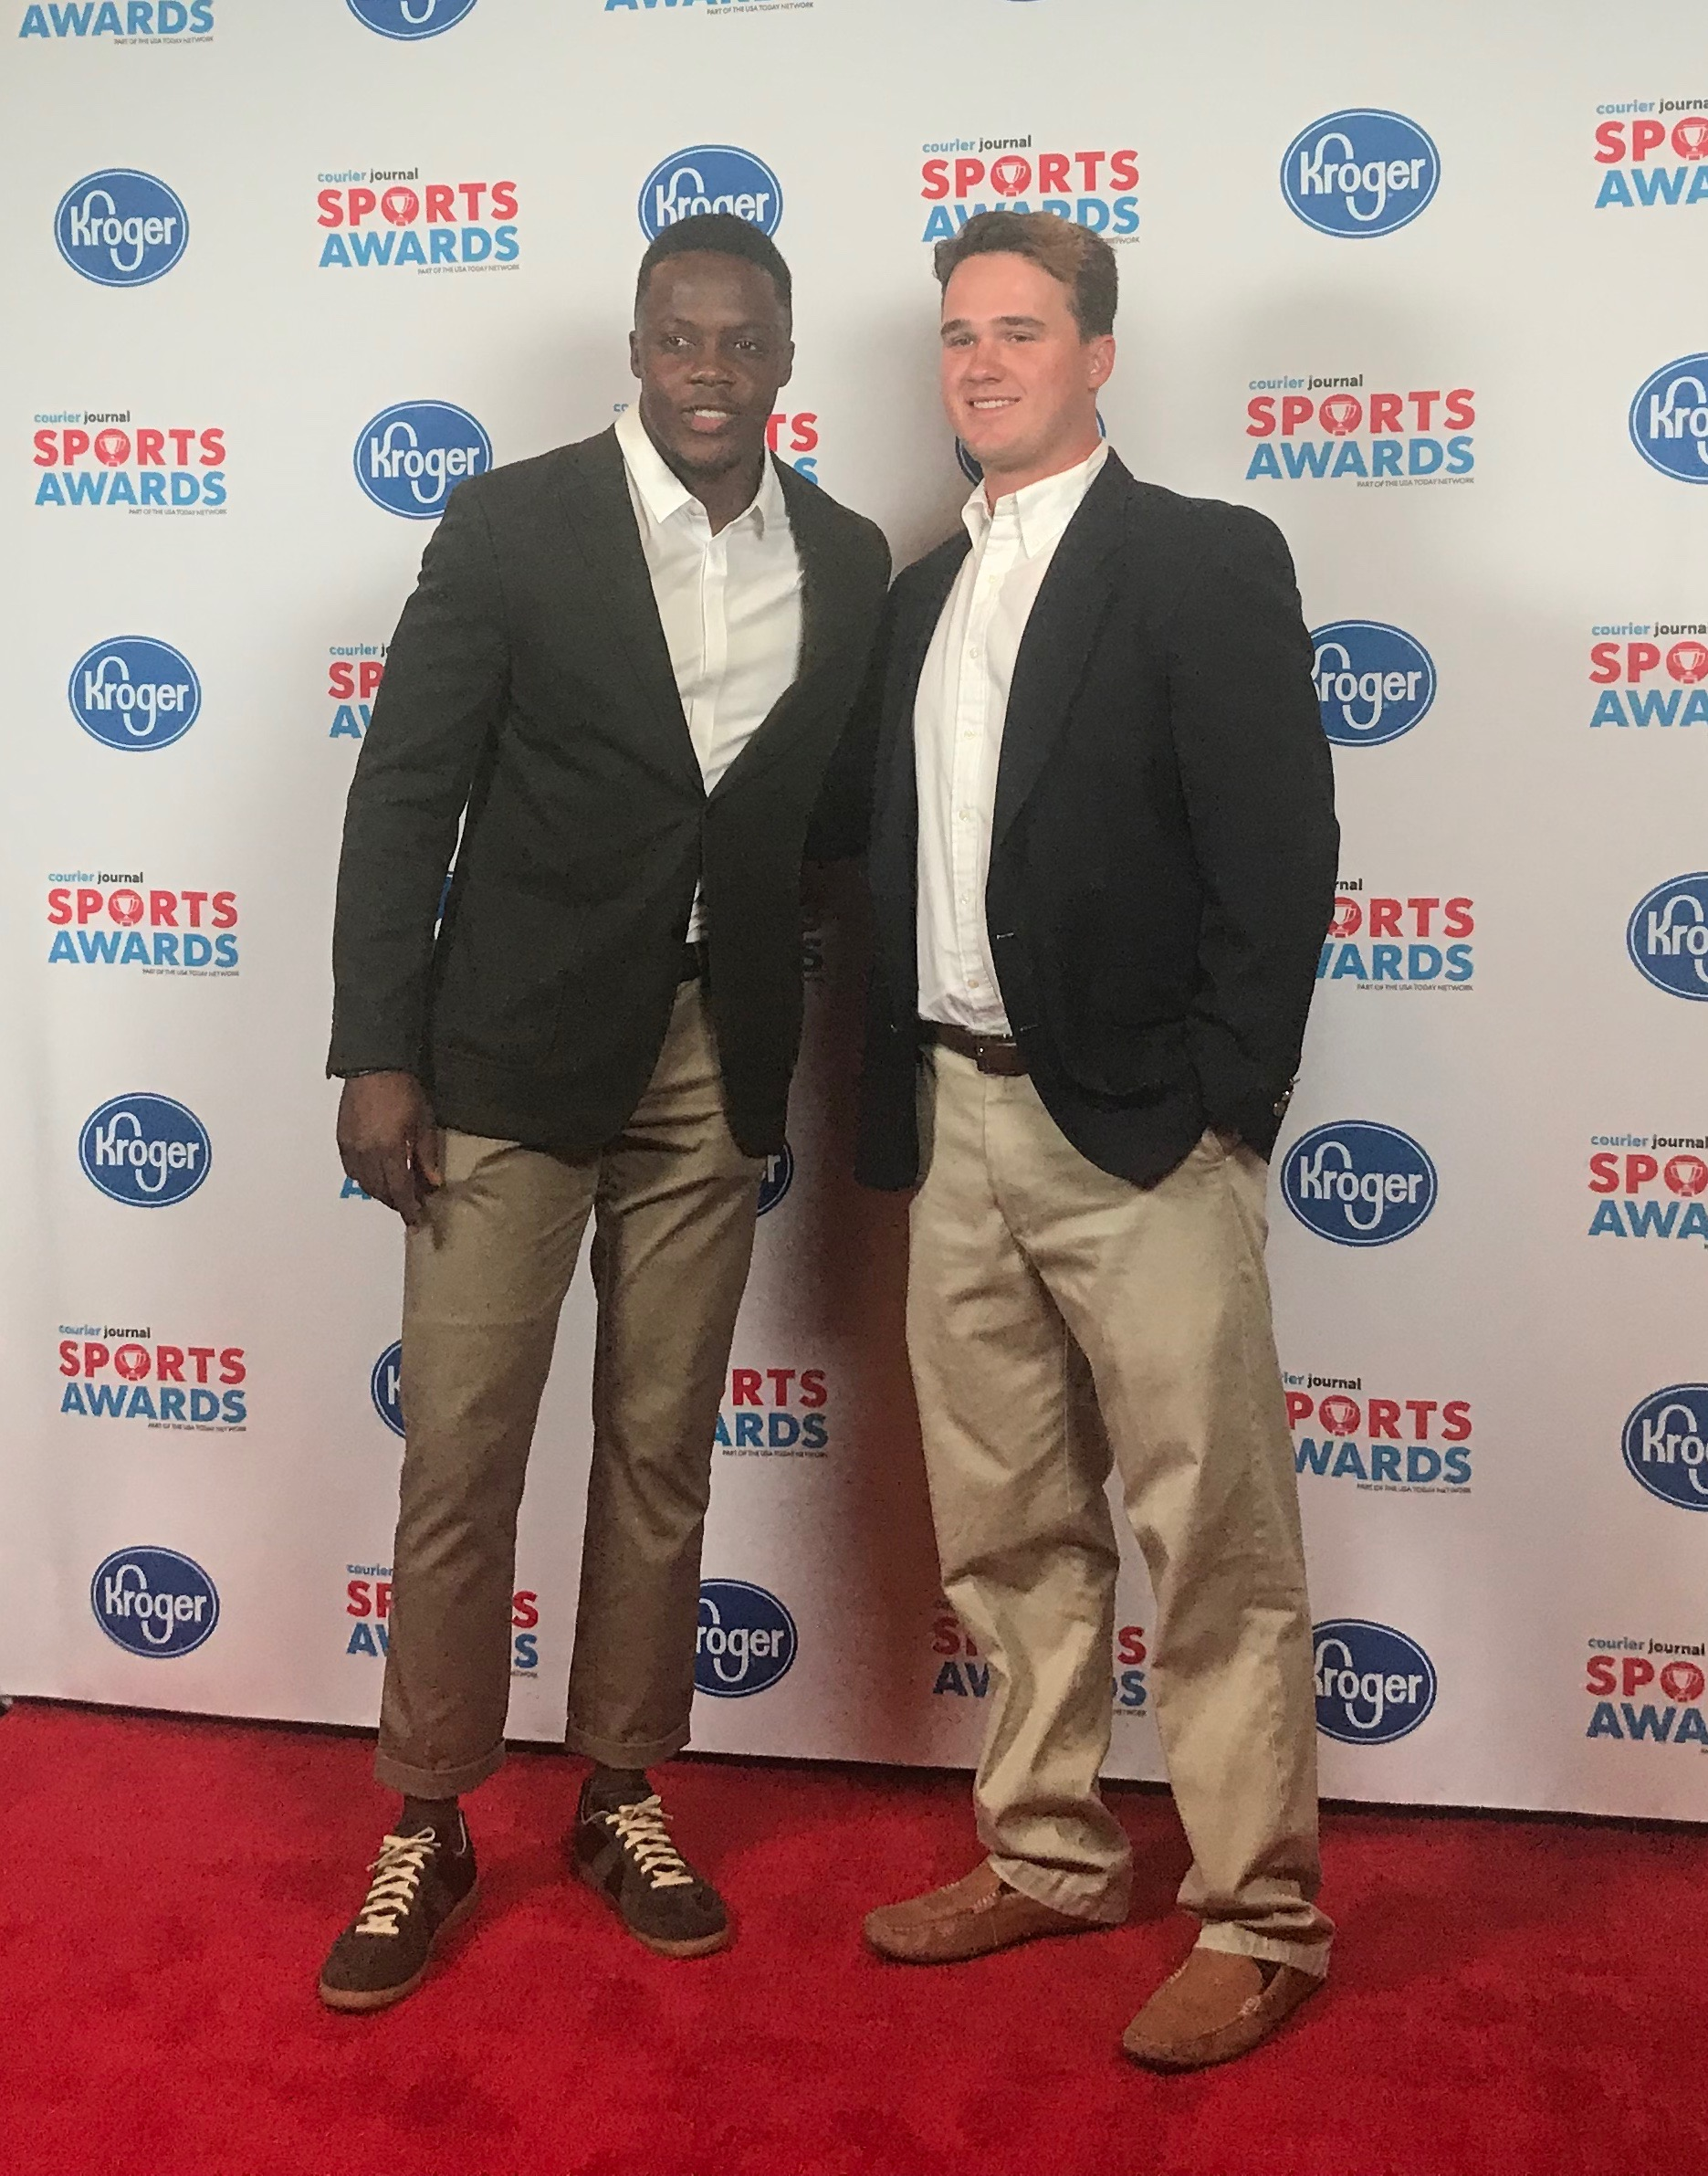 Seth Bacon with his hot date, Teddy Bridgewater.